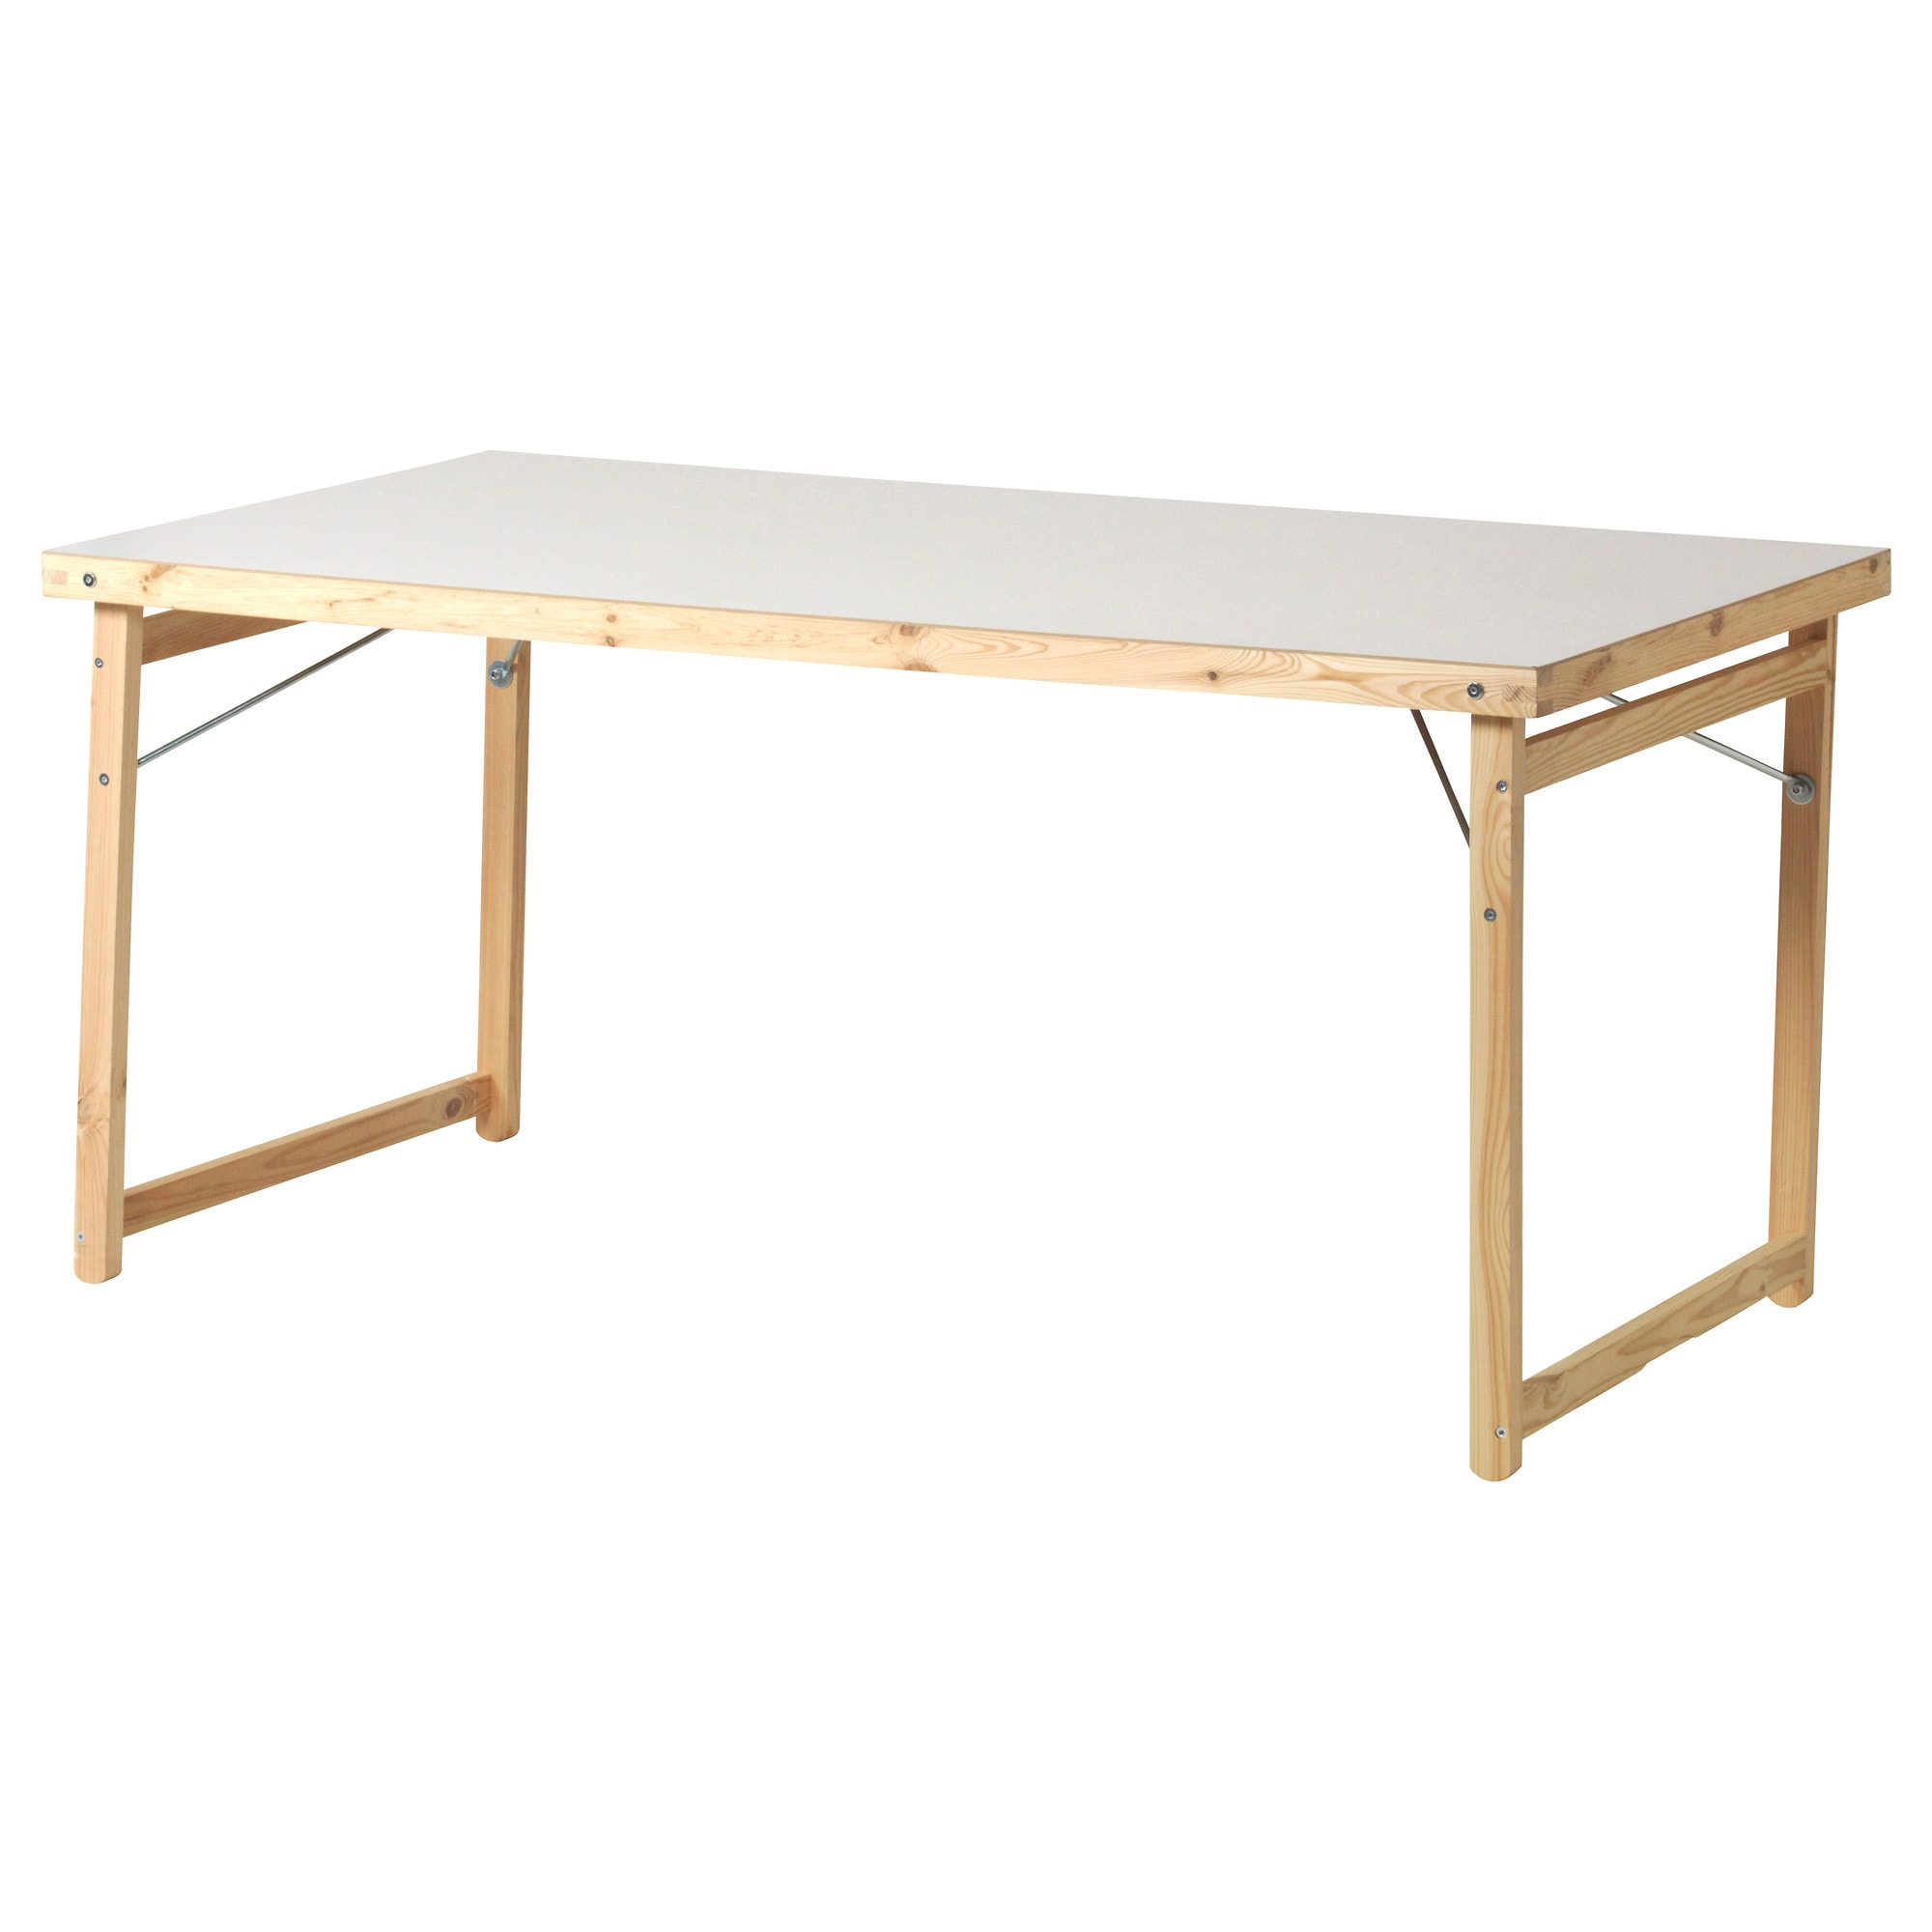 Table carree 8 personnes ikea 28 images table salle a for Table salle a manger 8 personnes conforama